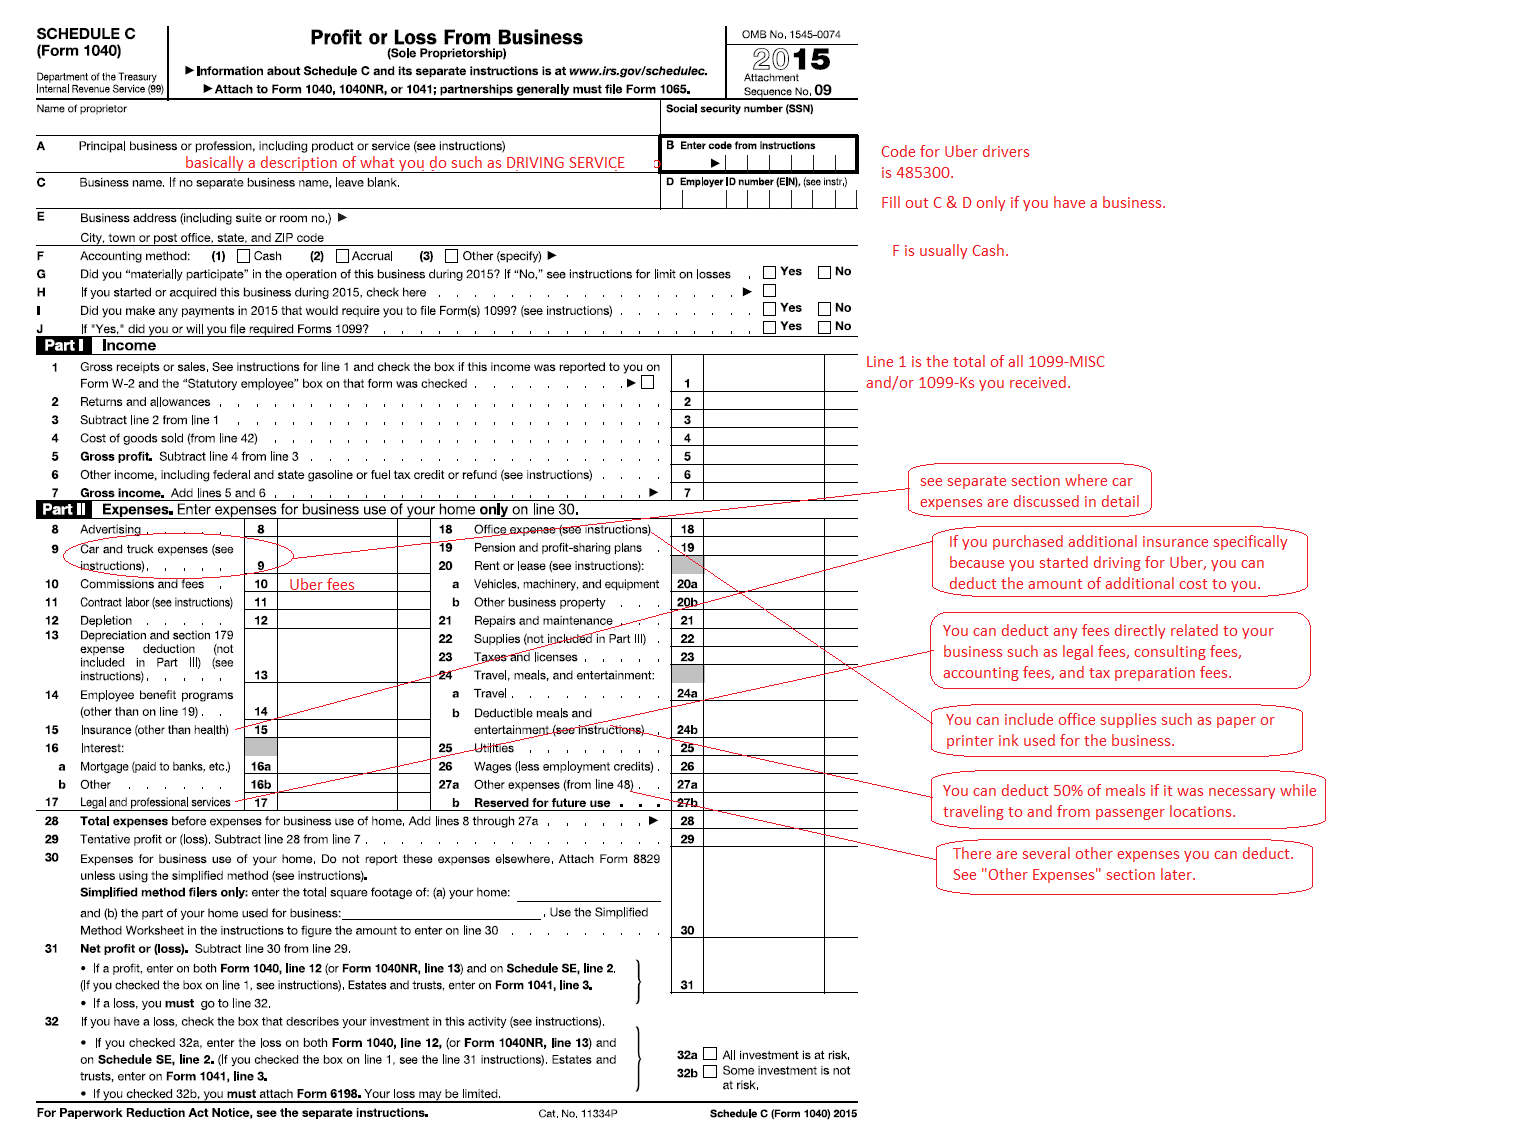 Tax Deduction Worksheet For Truck Drivers Spreadsheets